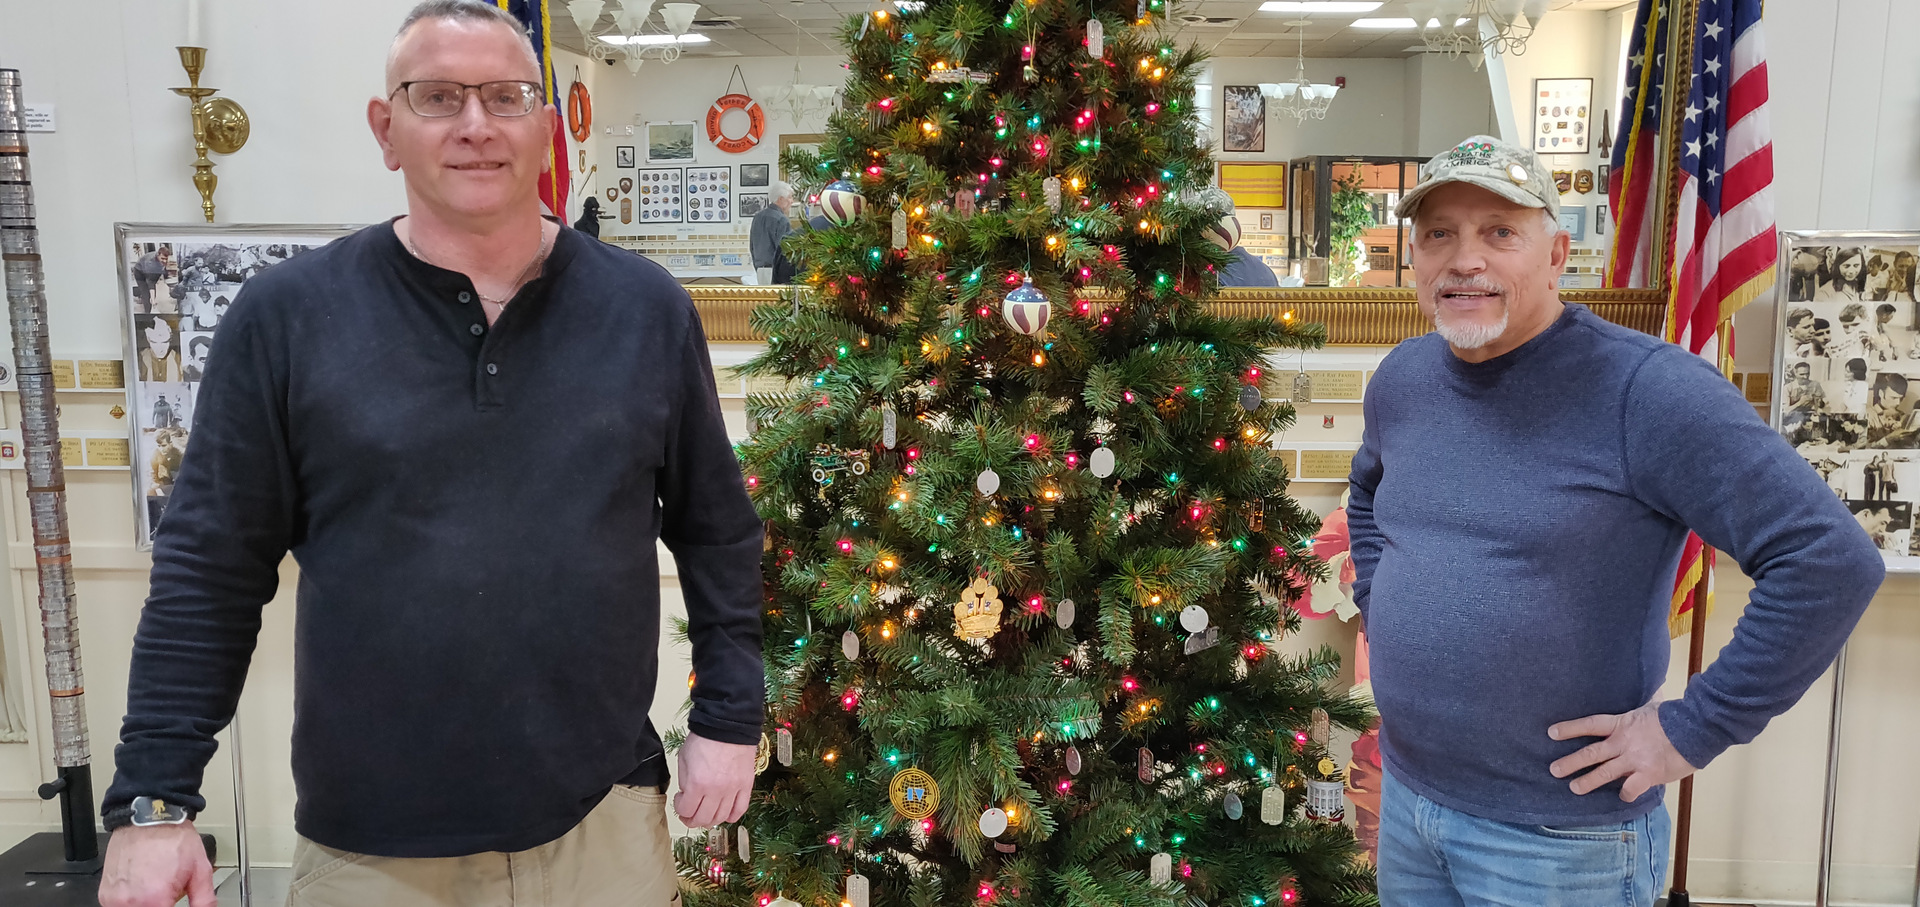 Shawn Withers and Peter Maestre with the 2019 Museum Christmas Tree